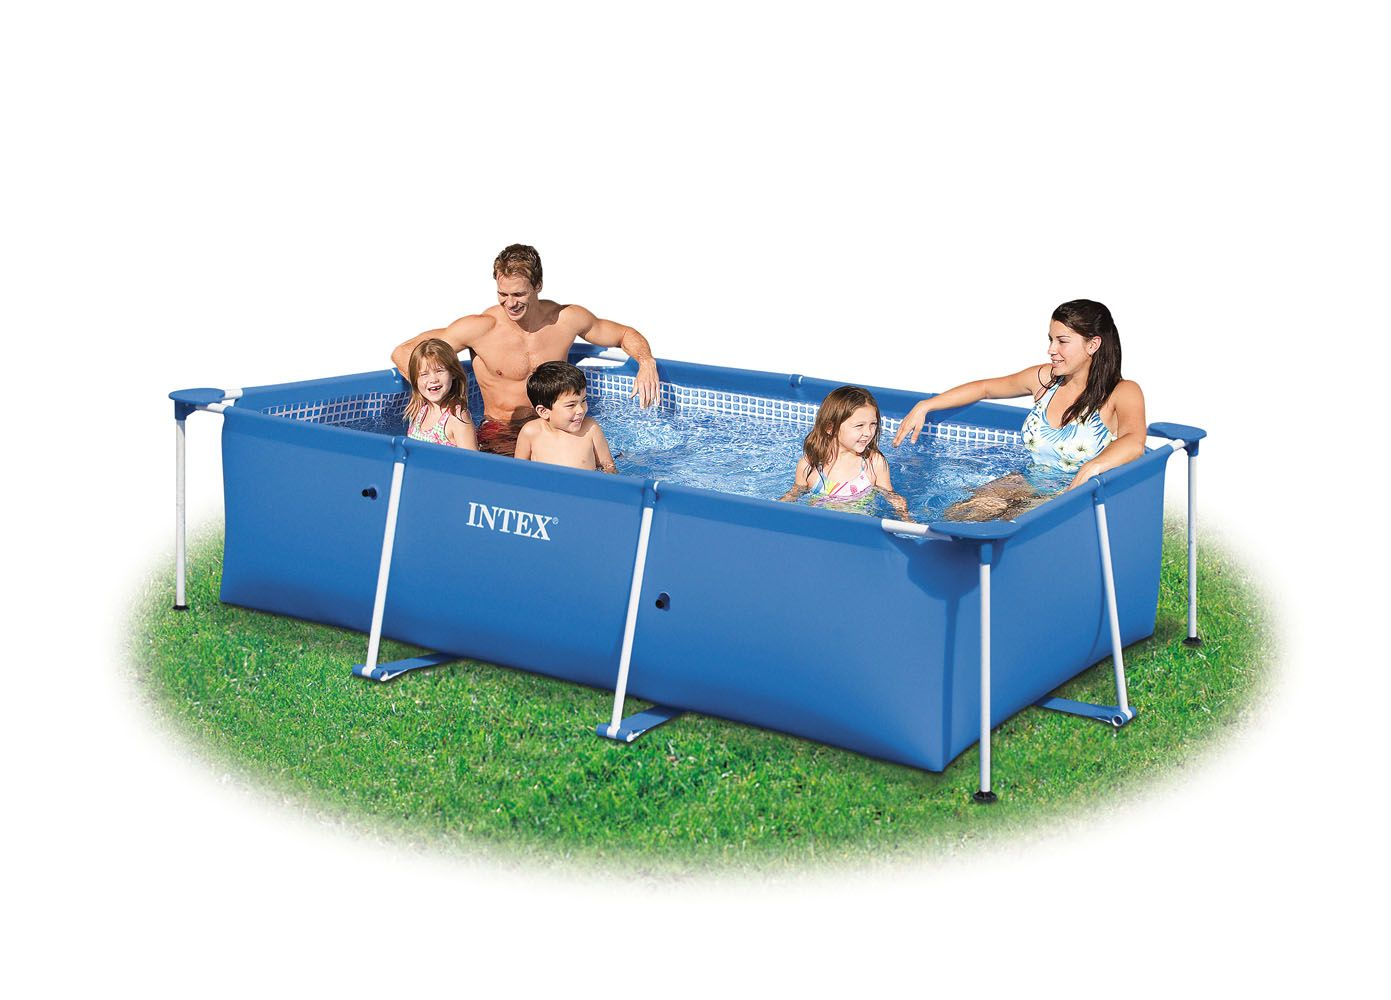 Piscina infantil intex intex for Alberca intex